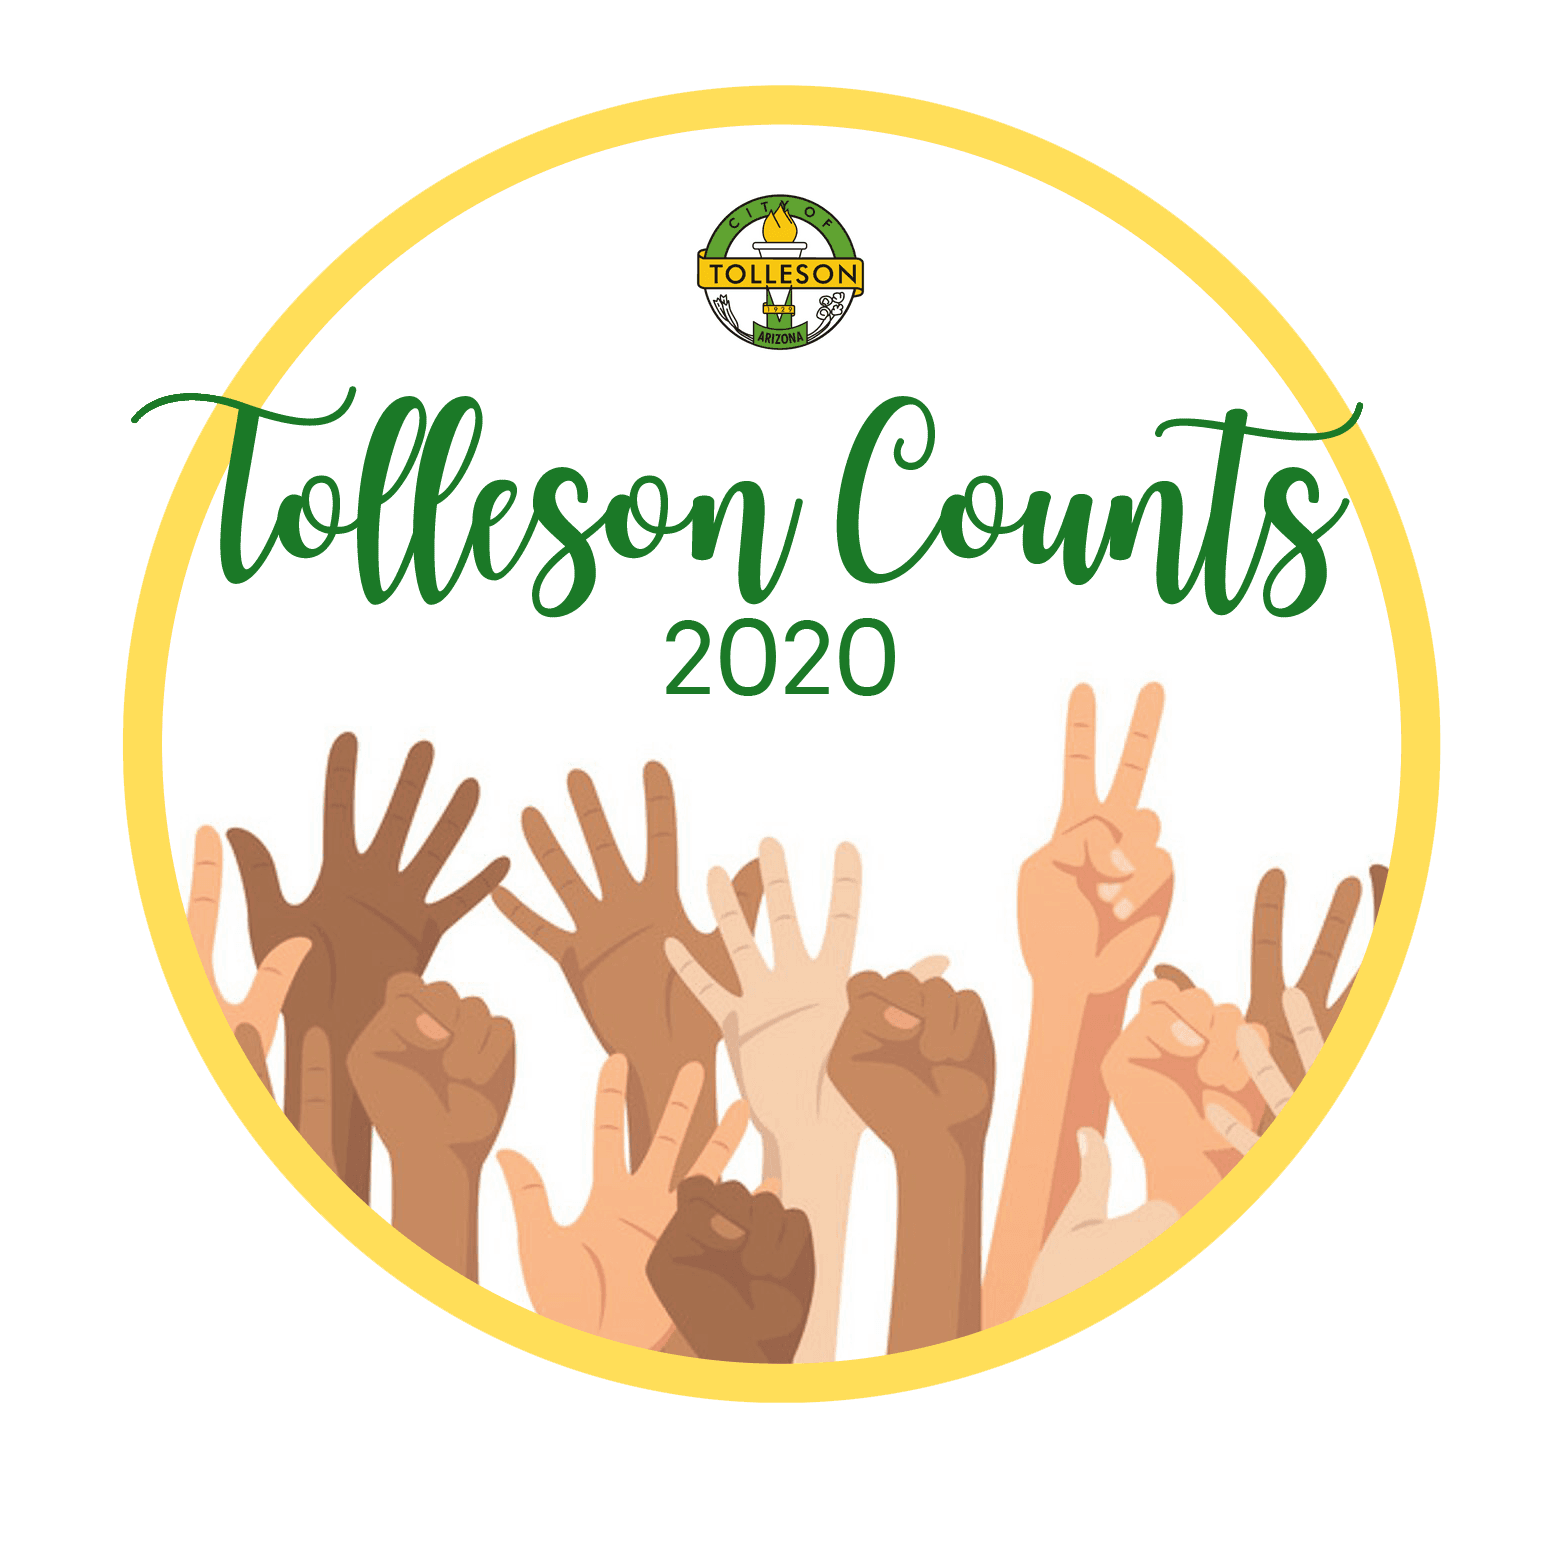 Tolleson Census logo